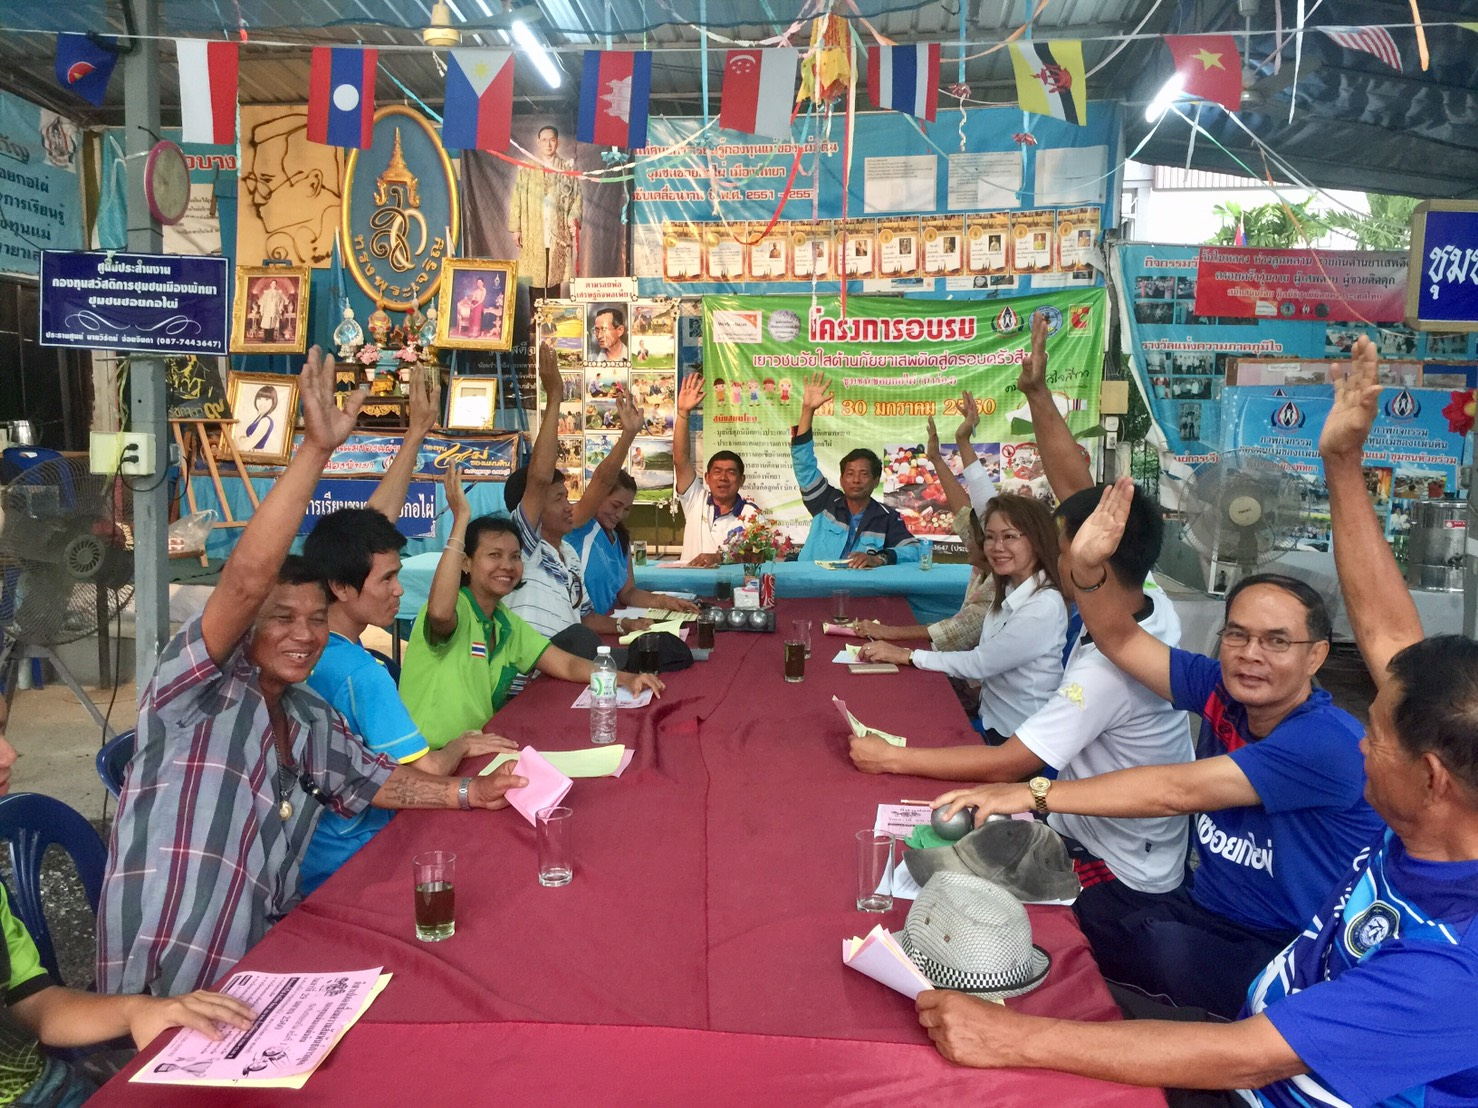 Neighborhood President Wirach Joyjinda welcomed charity executives to the Pattaya community where they explained their local-support program.